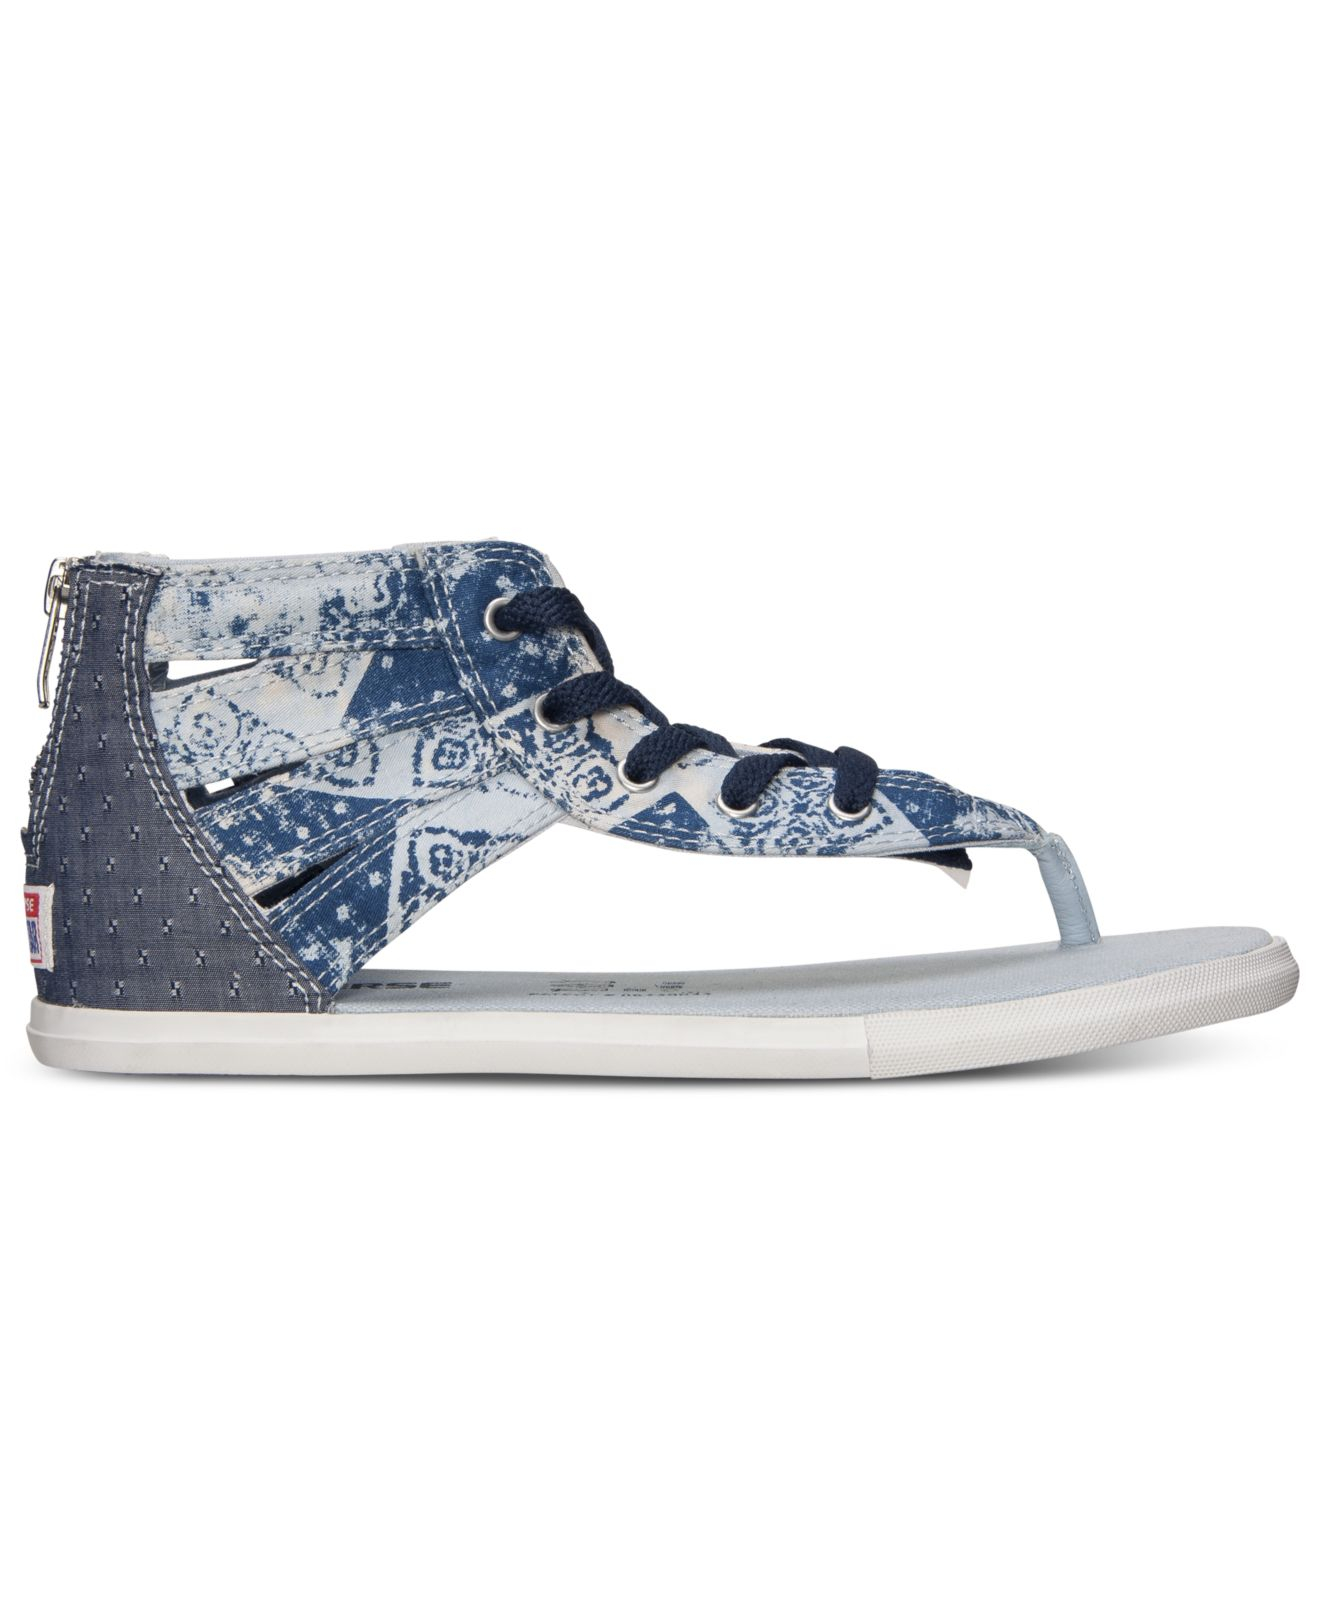 f716292278d8 ... best price lyst converse womens chuck taylor gladiator thong sandals  from 70fee aceba